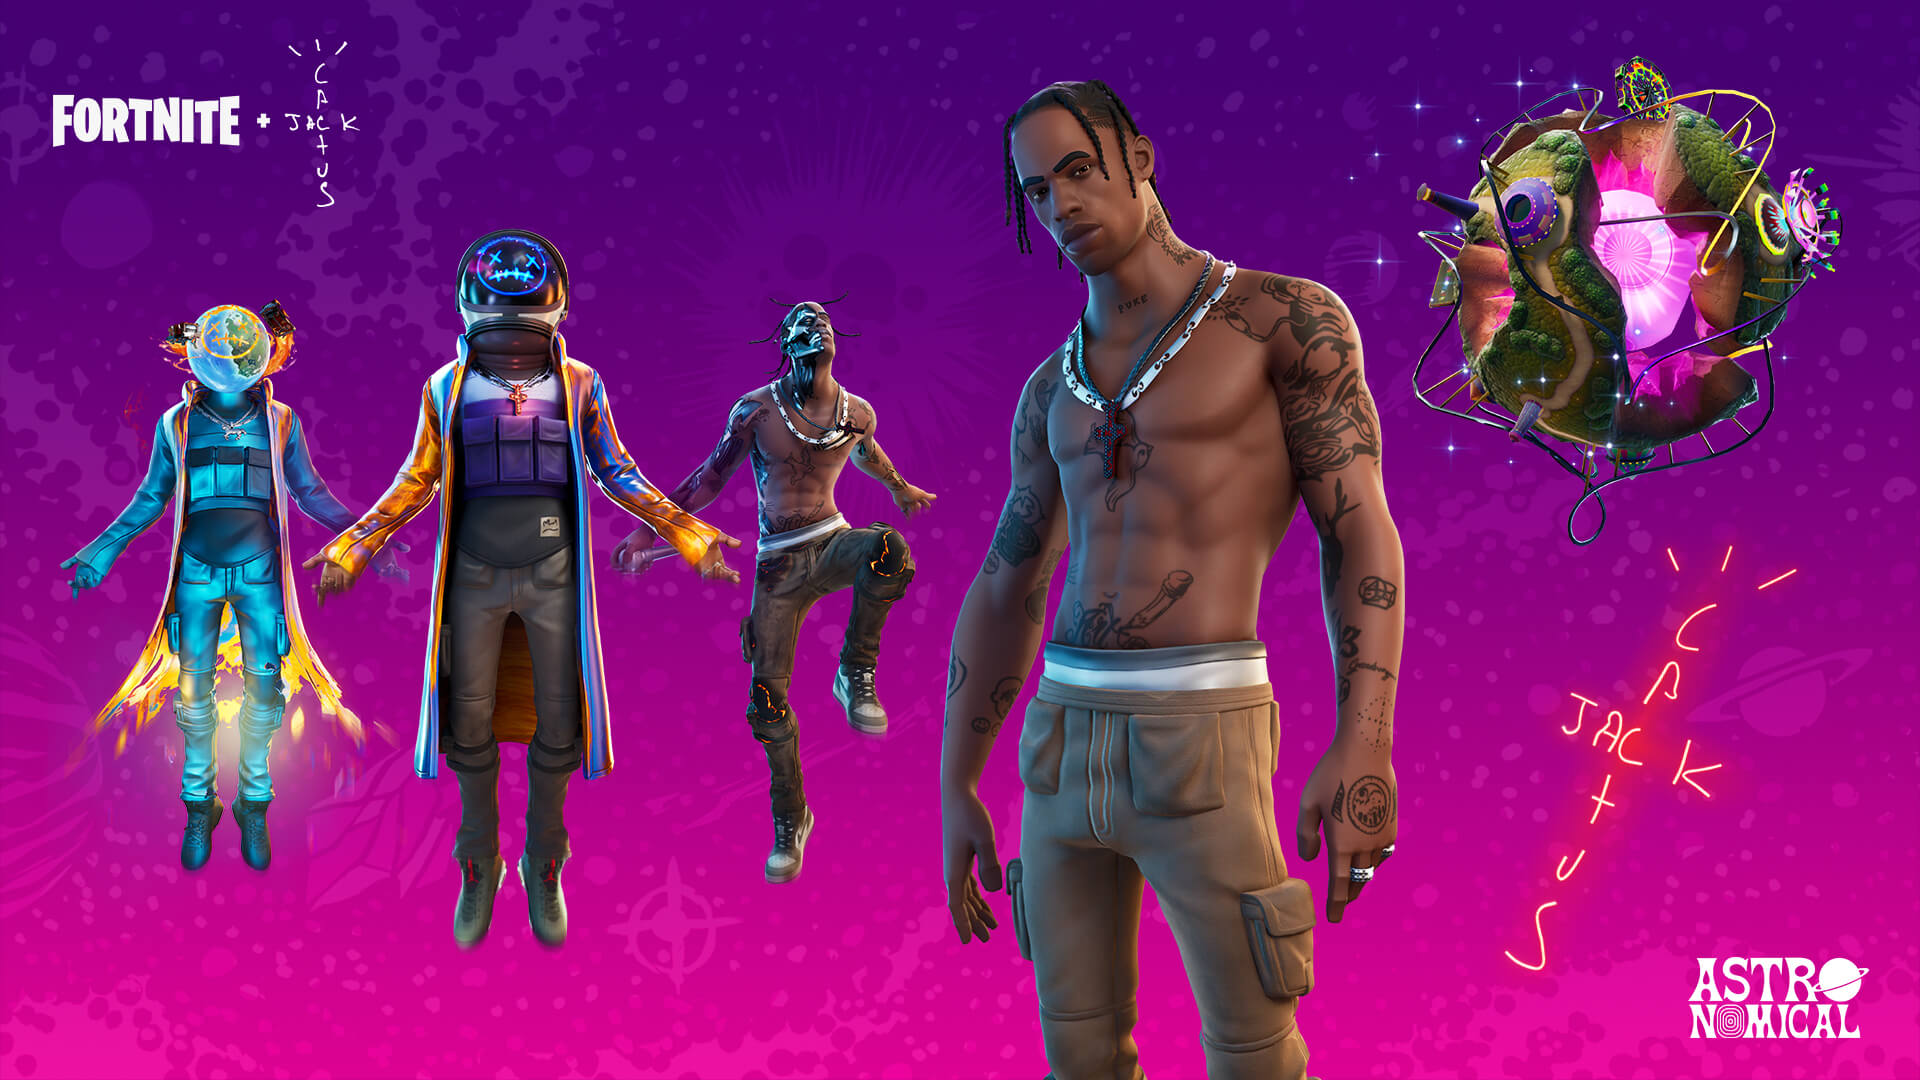 Fortnite_blog_astronomical_fortnite-astronomical-outfits-1920x1080-13af975f756b32665c80999cf894f336c6b990d7